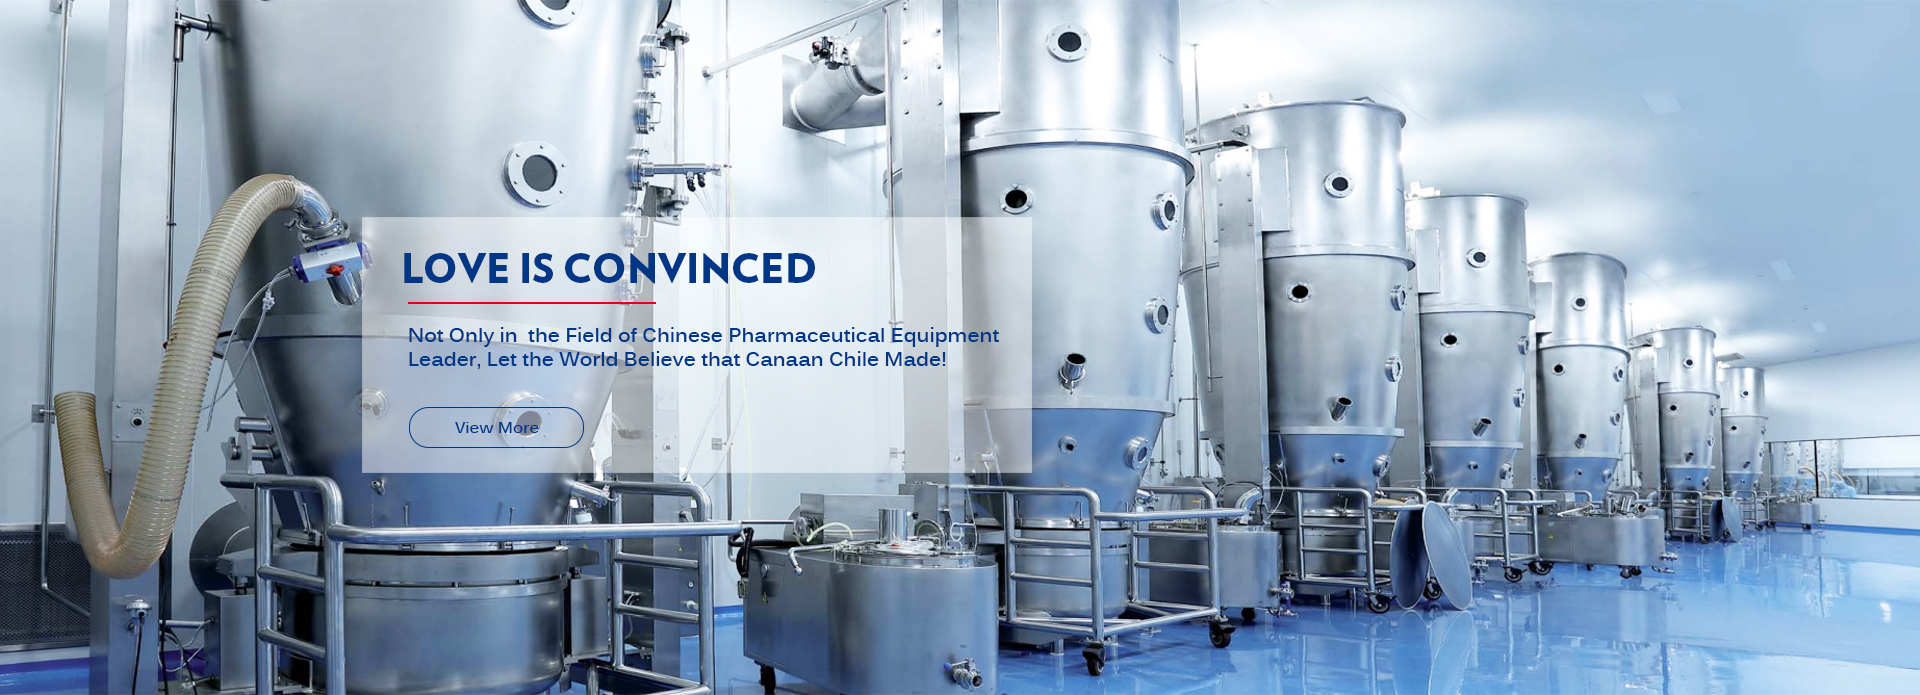 Why We Pharmaceutical Equipment Users Understand GMP?